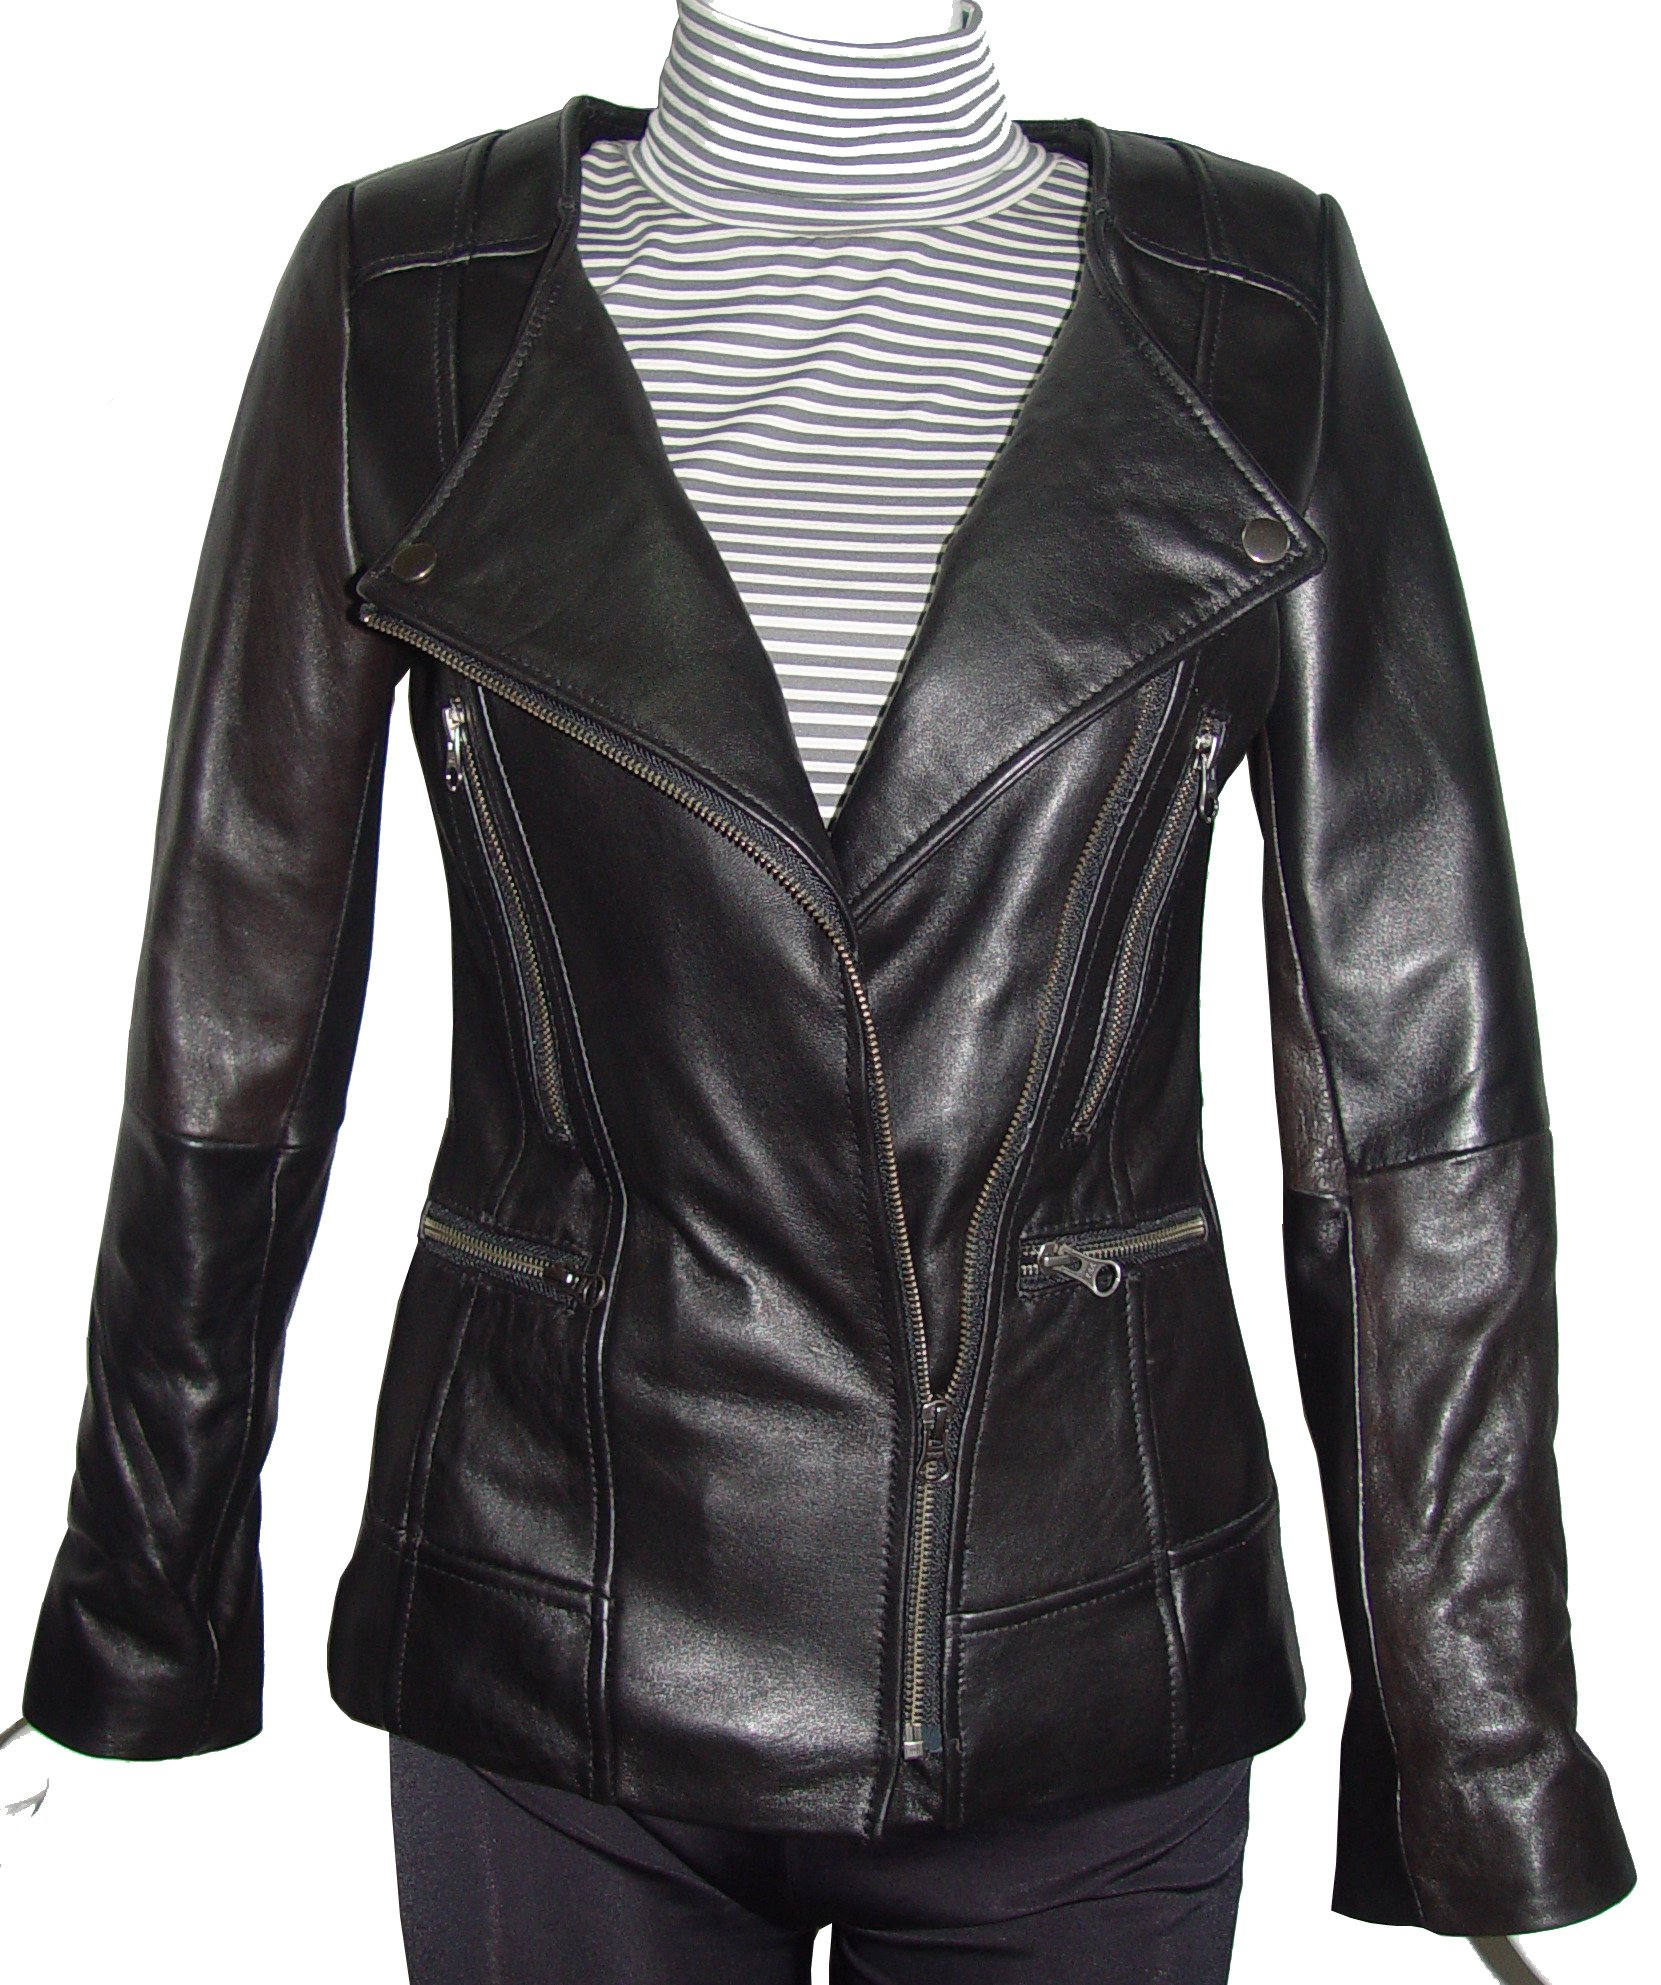 Nettailor Women PETITE & ALL SIZE Fashion 4128 Leather Motorcycle Jacket by Paccilo (Image #5)